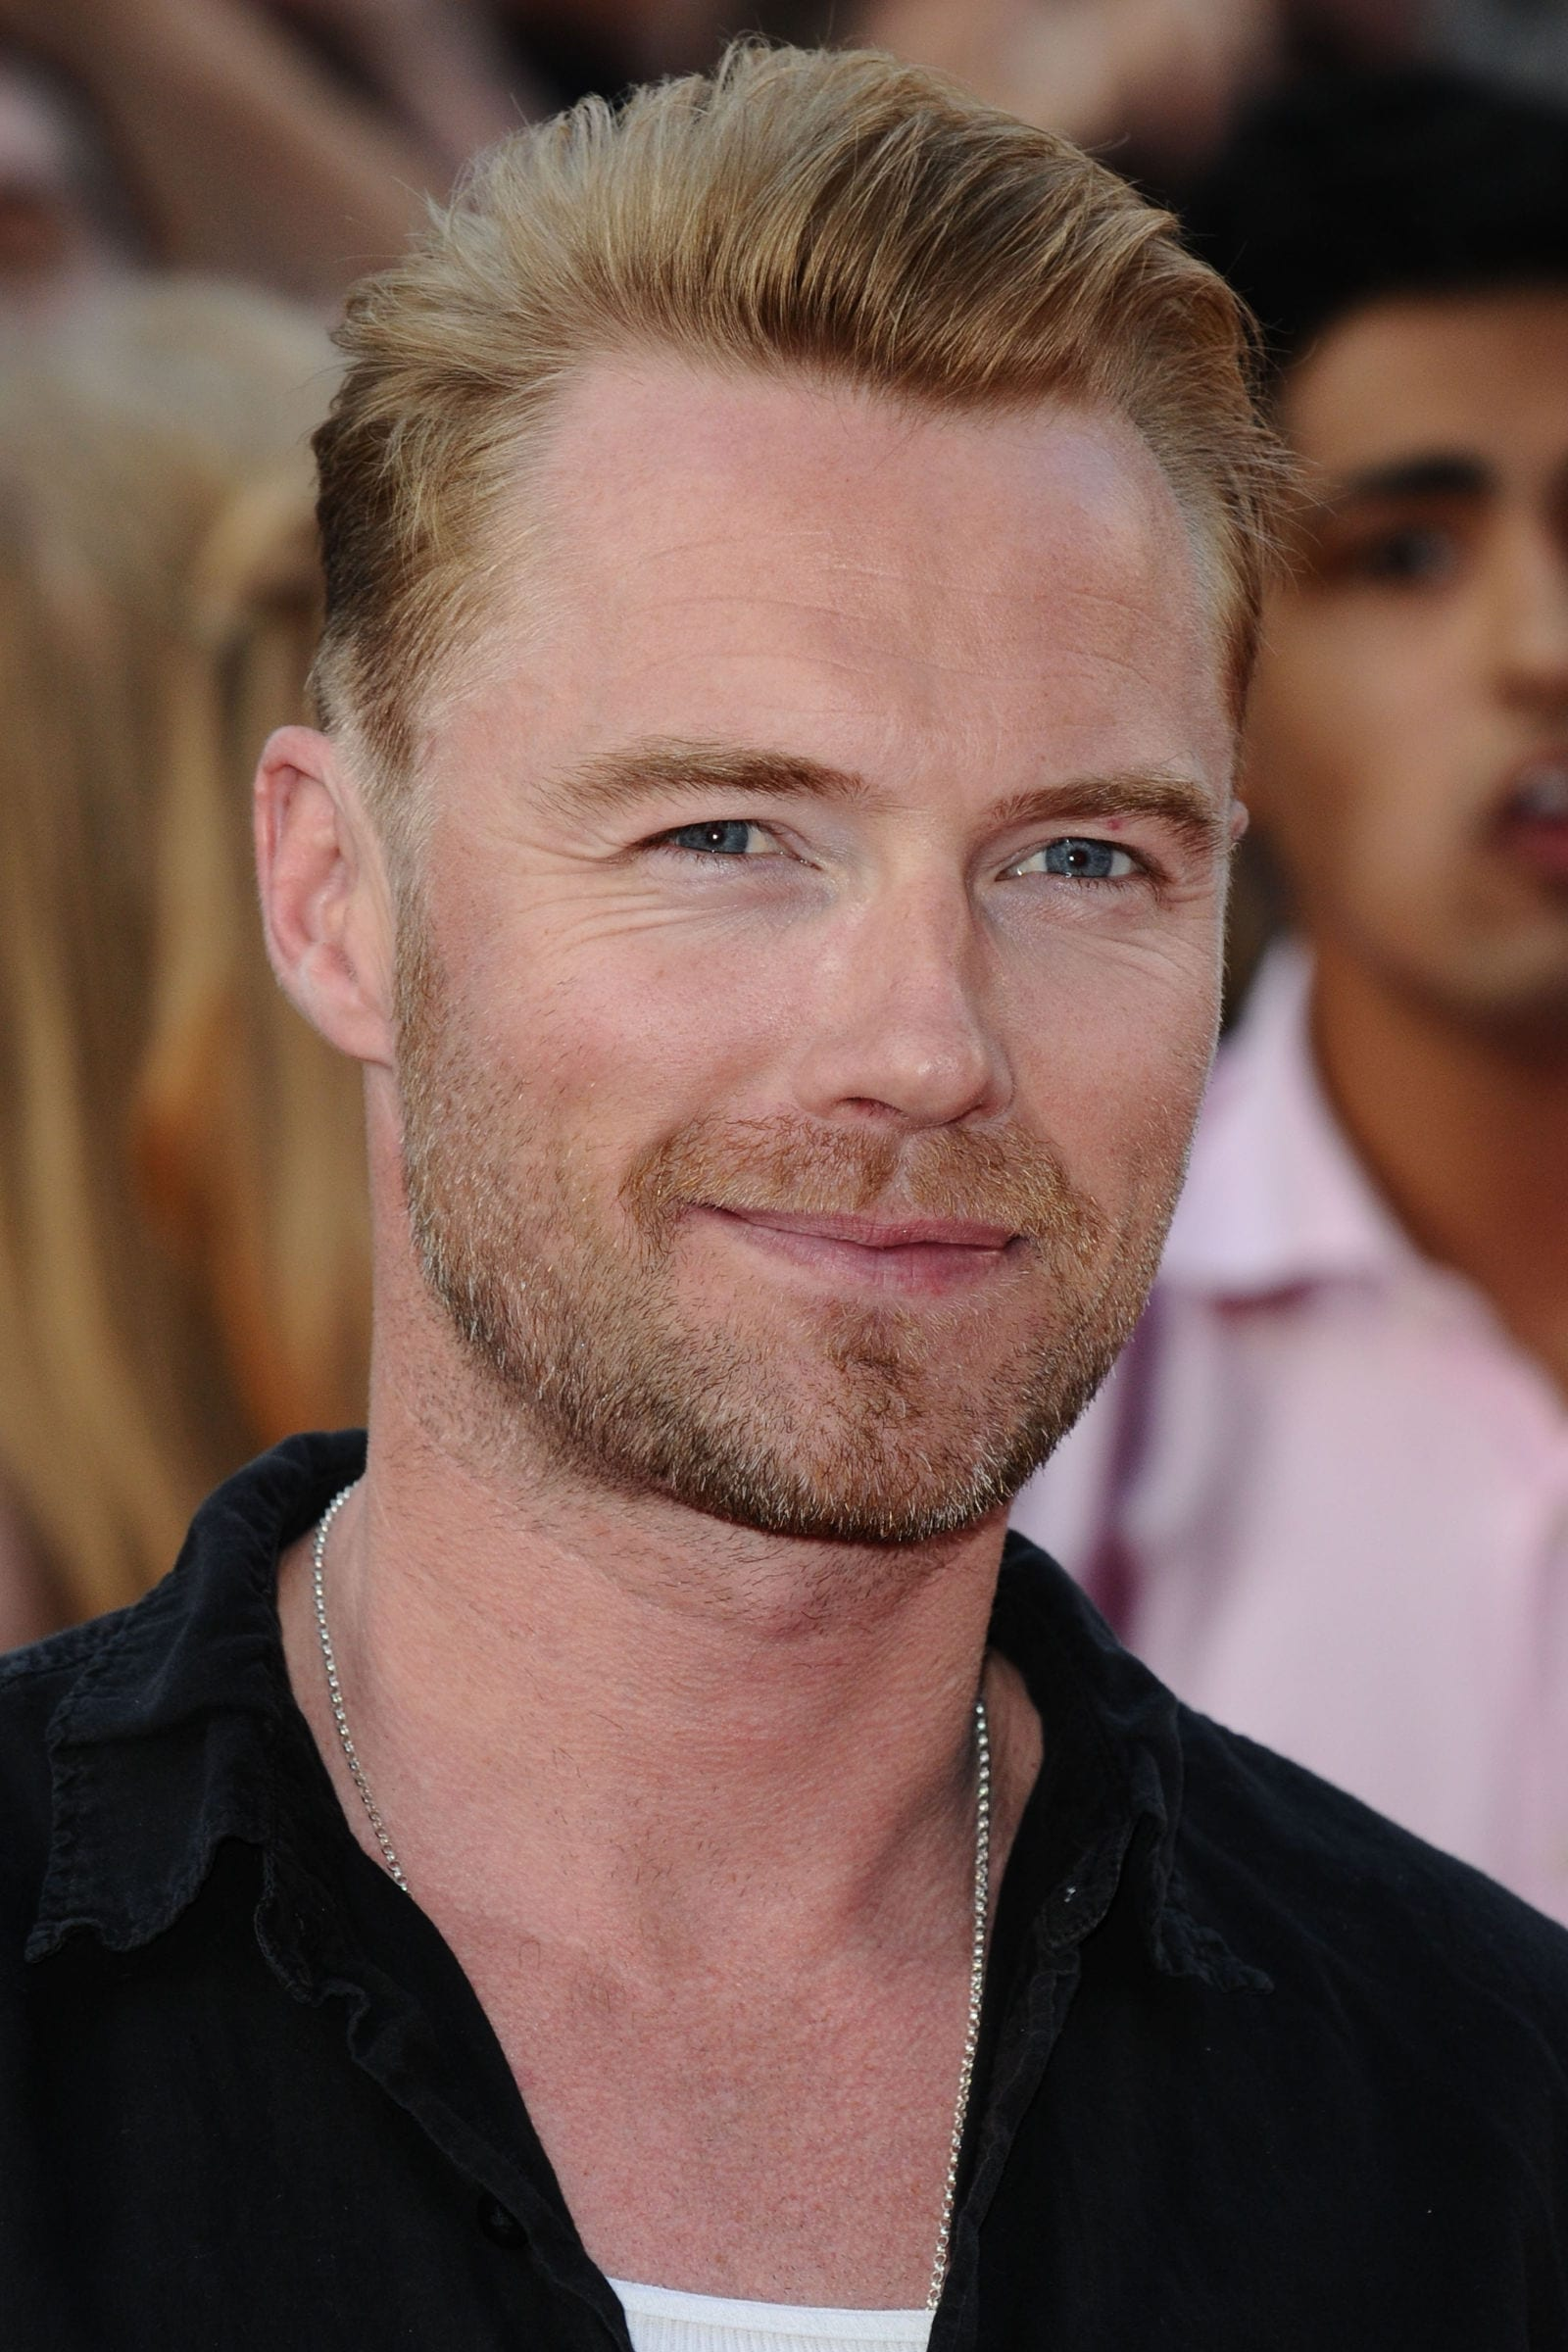 Ronan Keating Slicked Back Undercut Blonde Hair